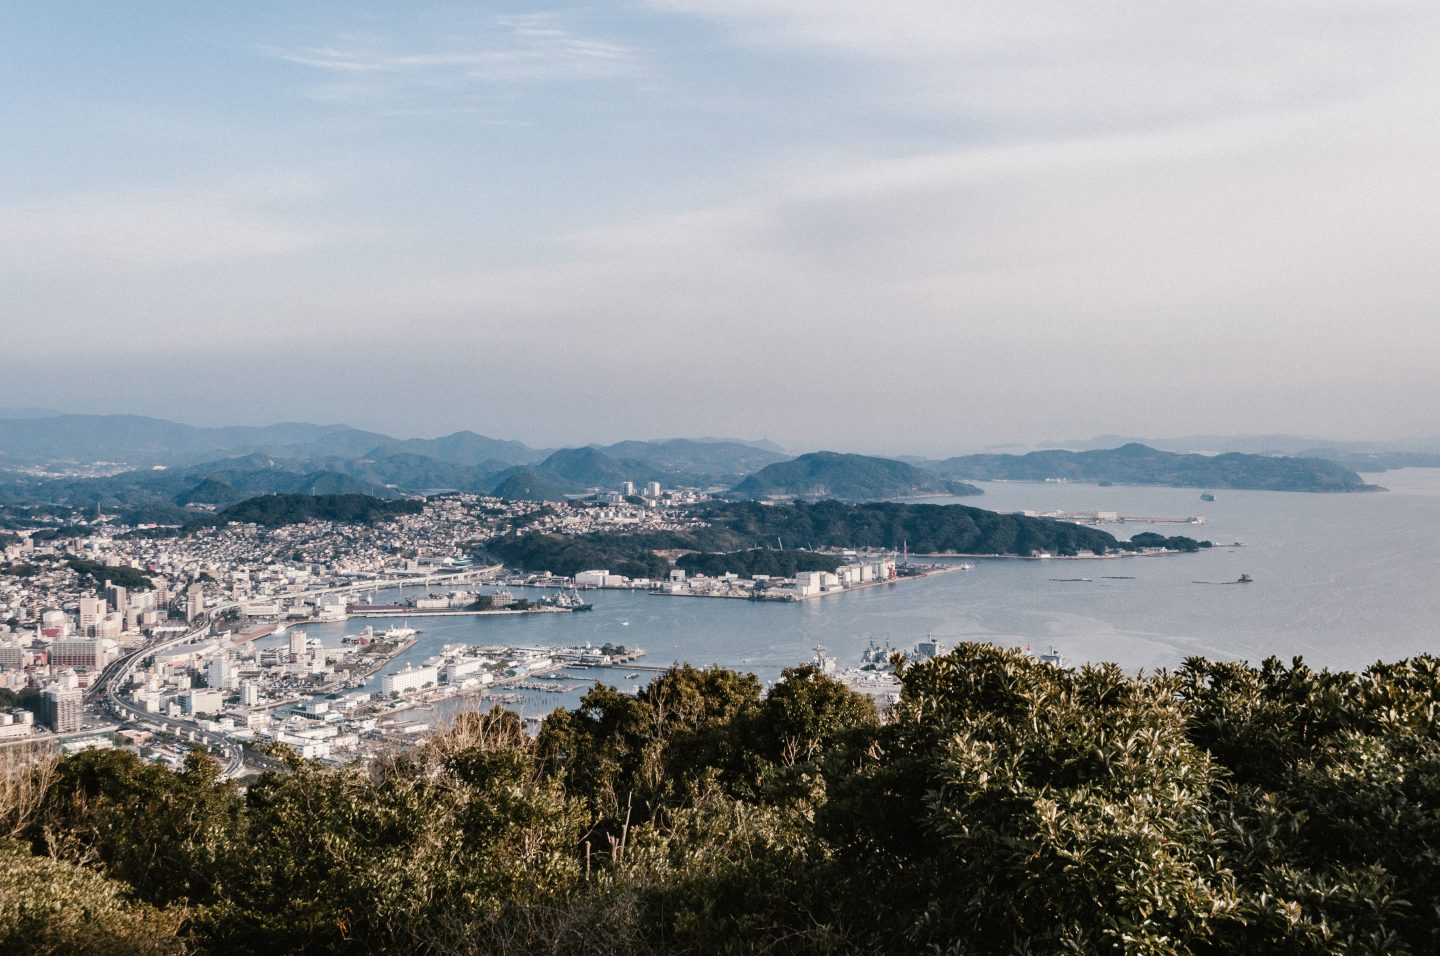 a view from a mountain over the ocean and city, mountains in background, travel scenery